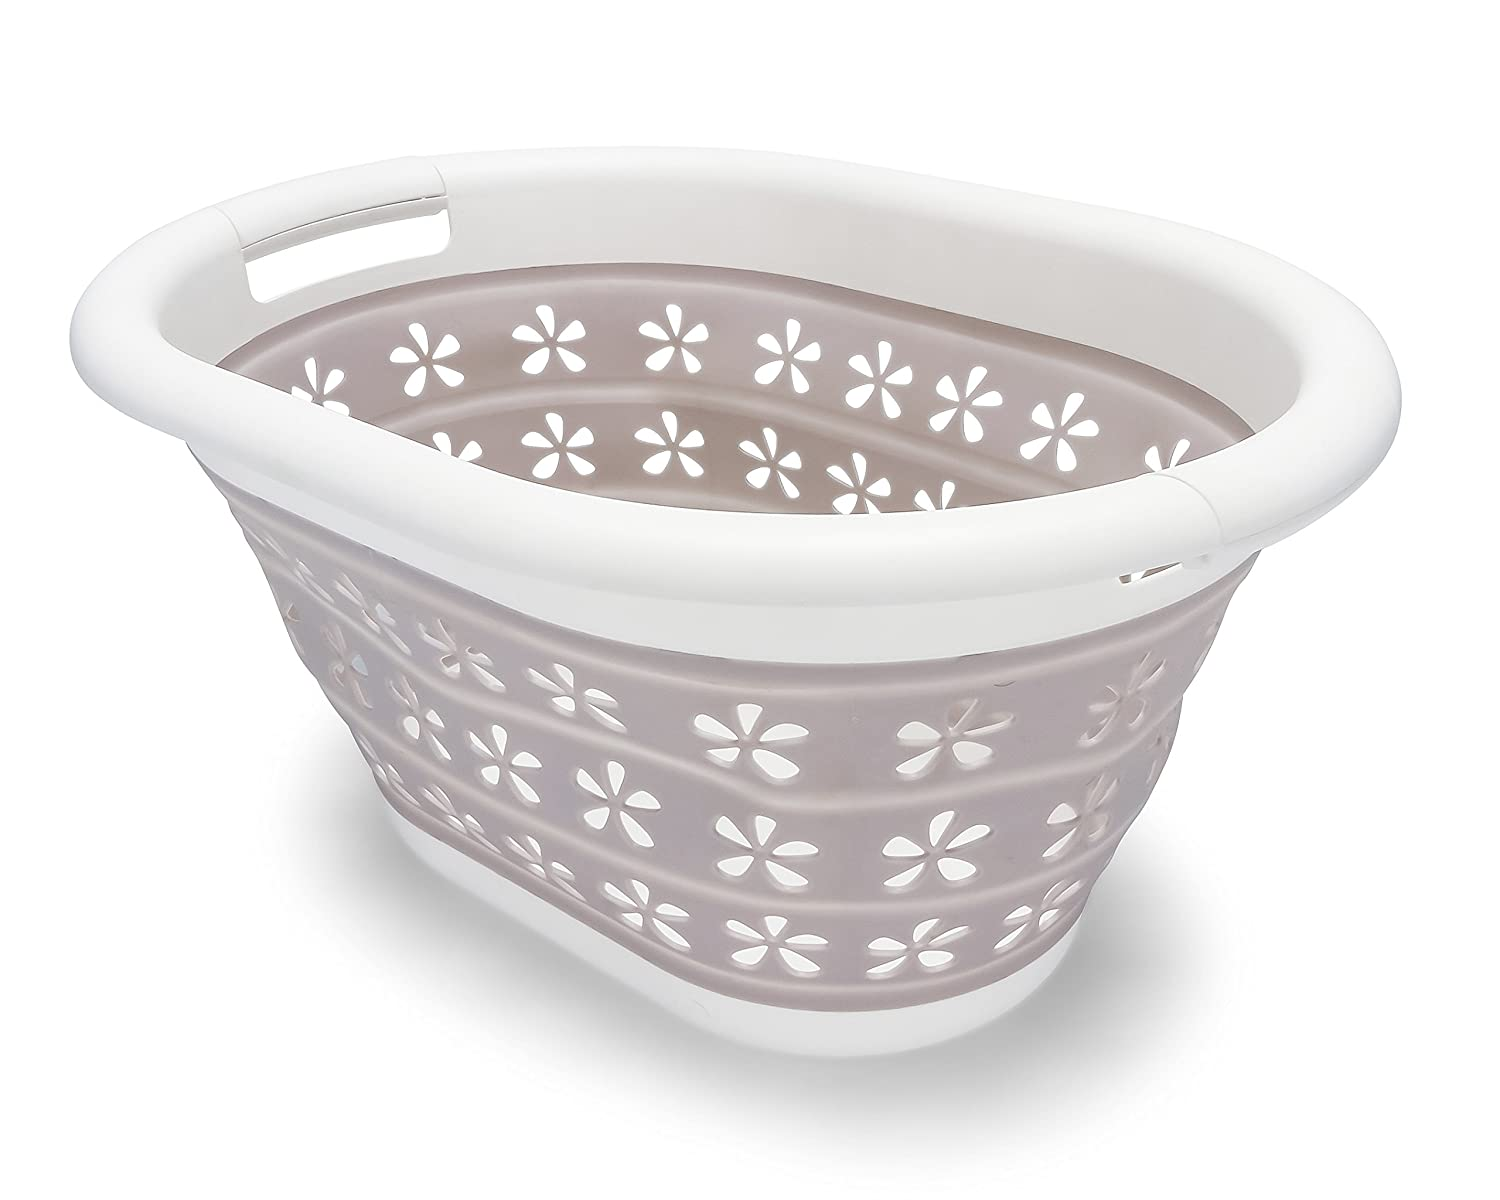 Camco 51951 Collapsible Utility Basket - Small, White/Taupe